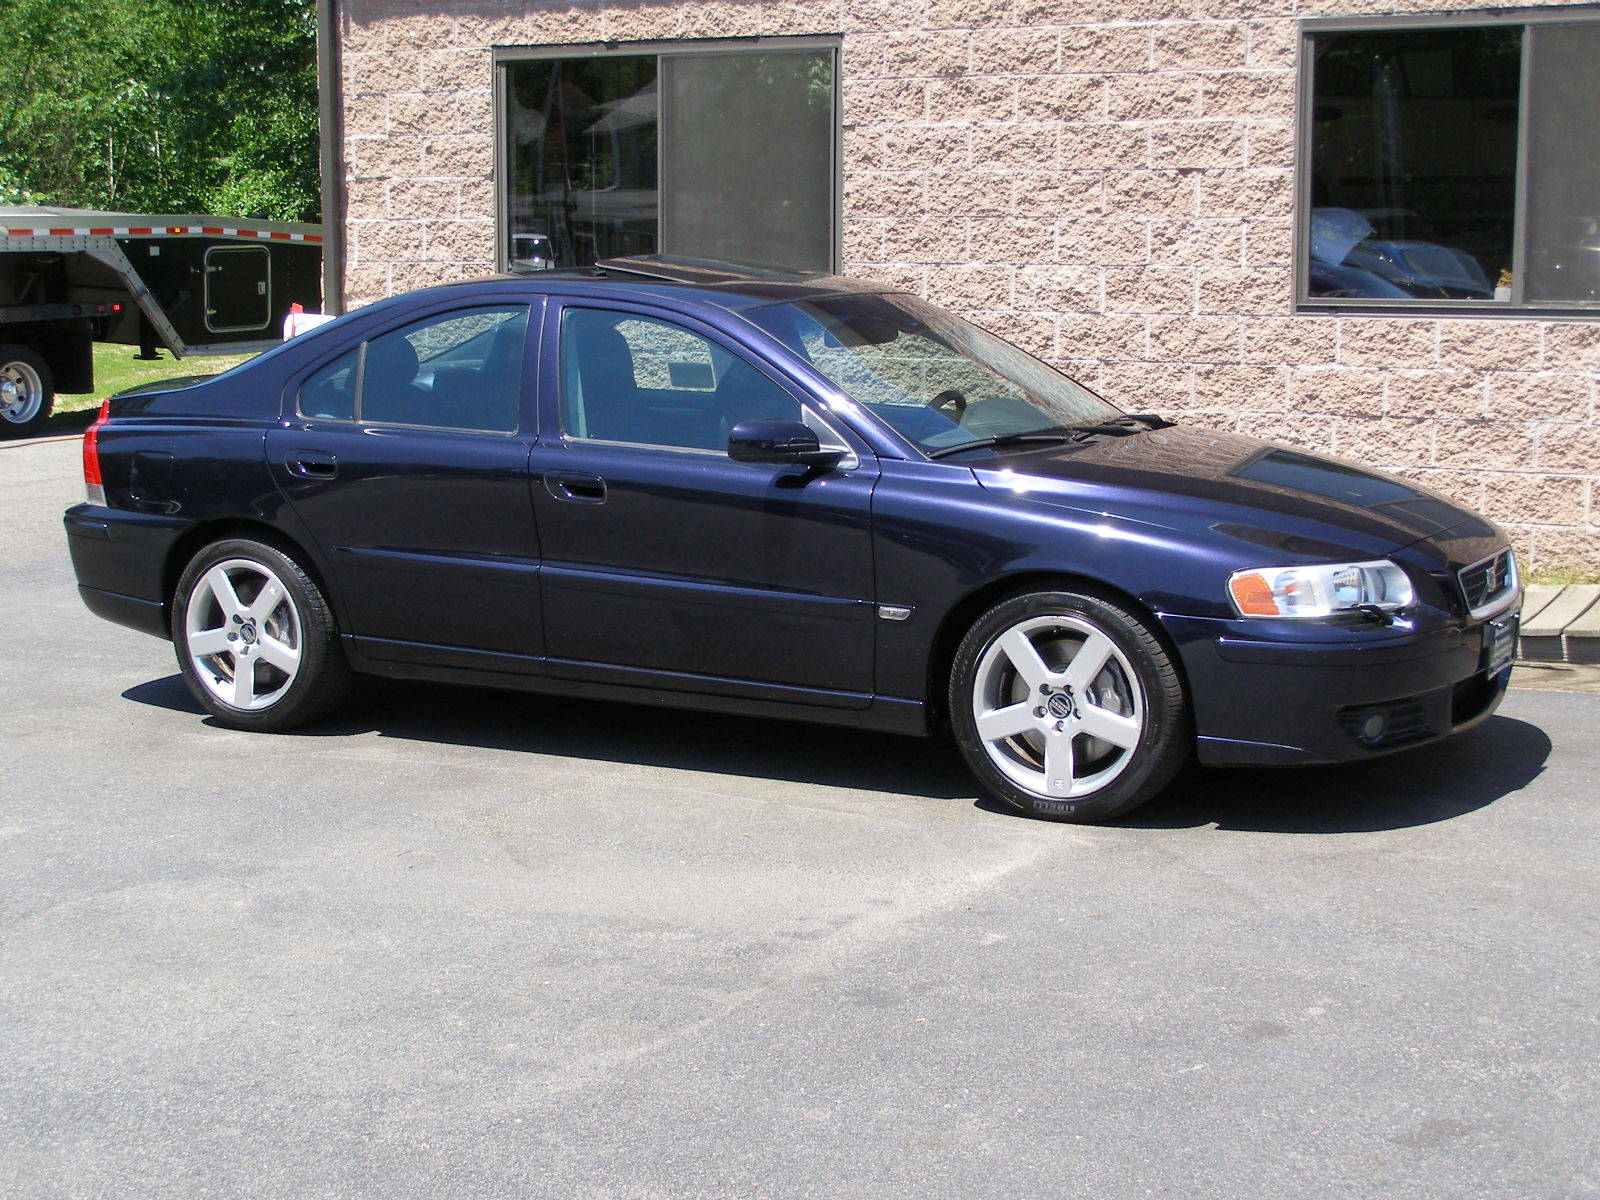 2005 Volvo S60 2 5t Awd Vin Number Search Autodetective